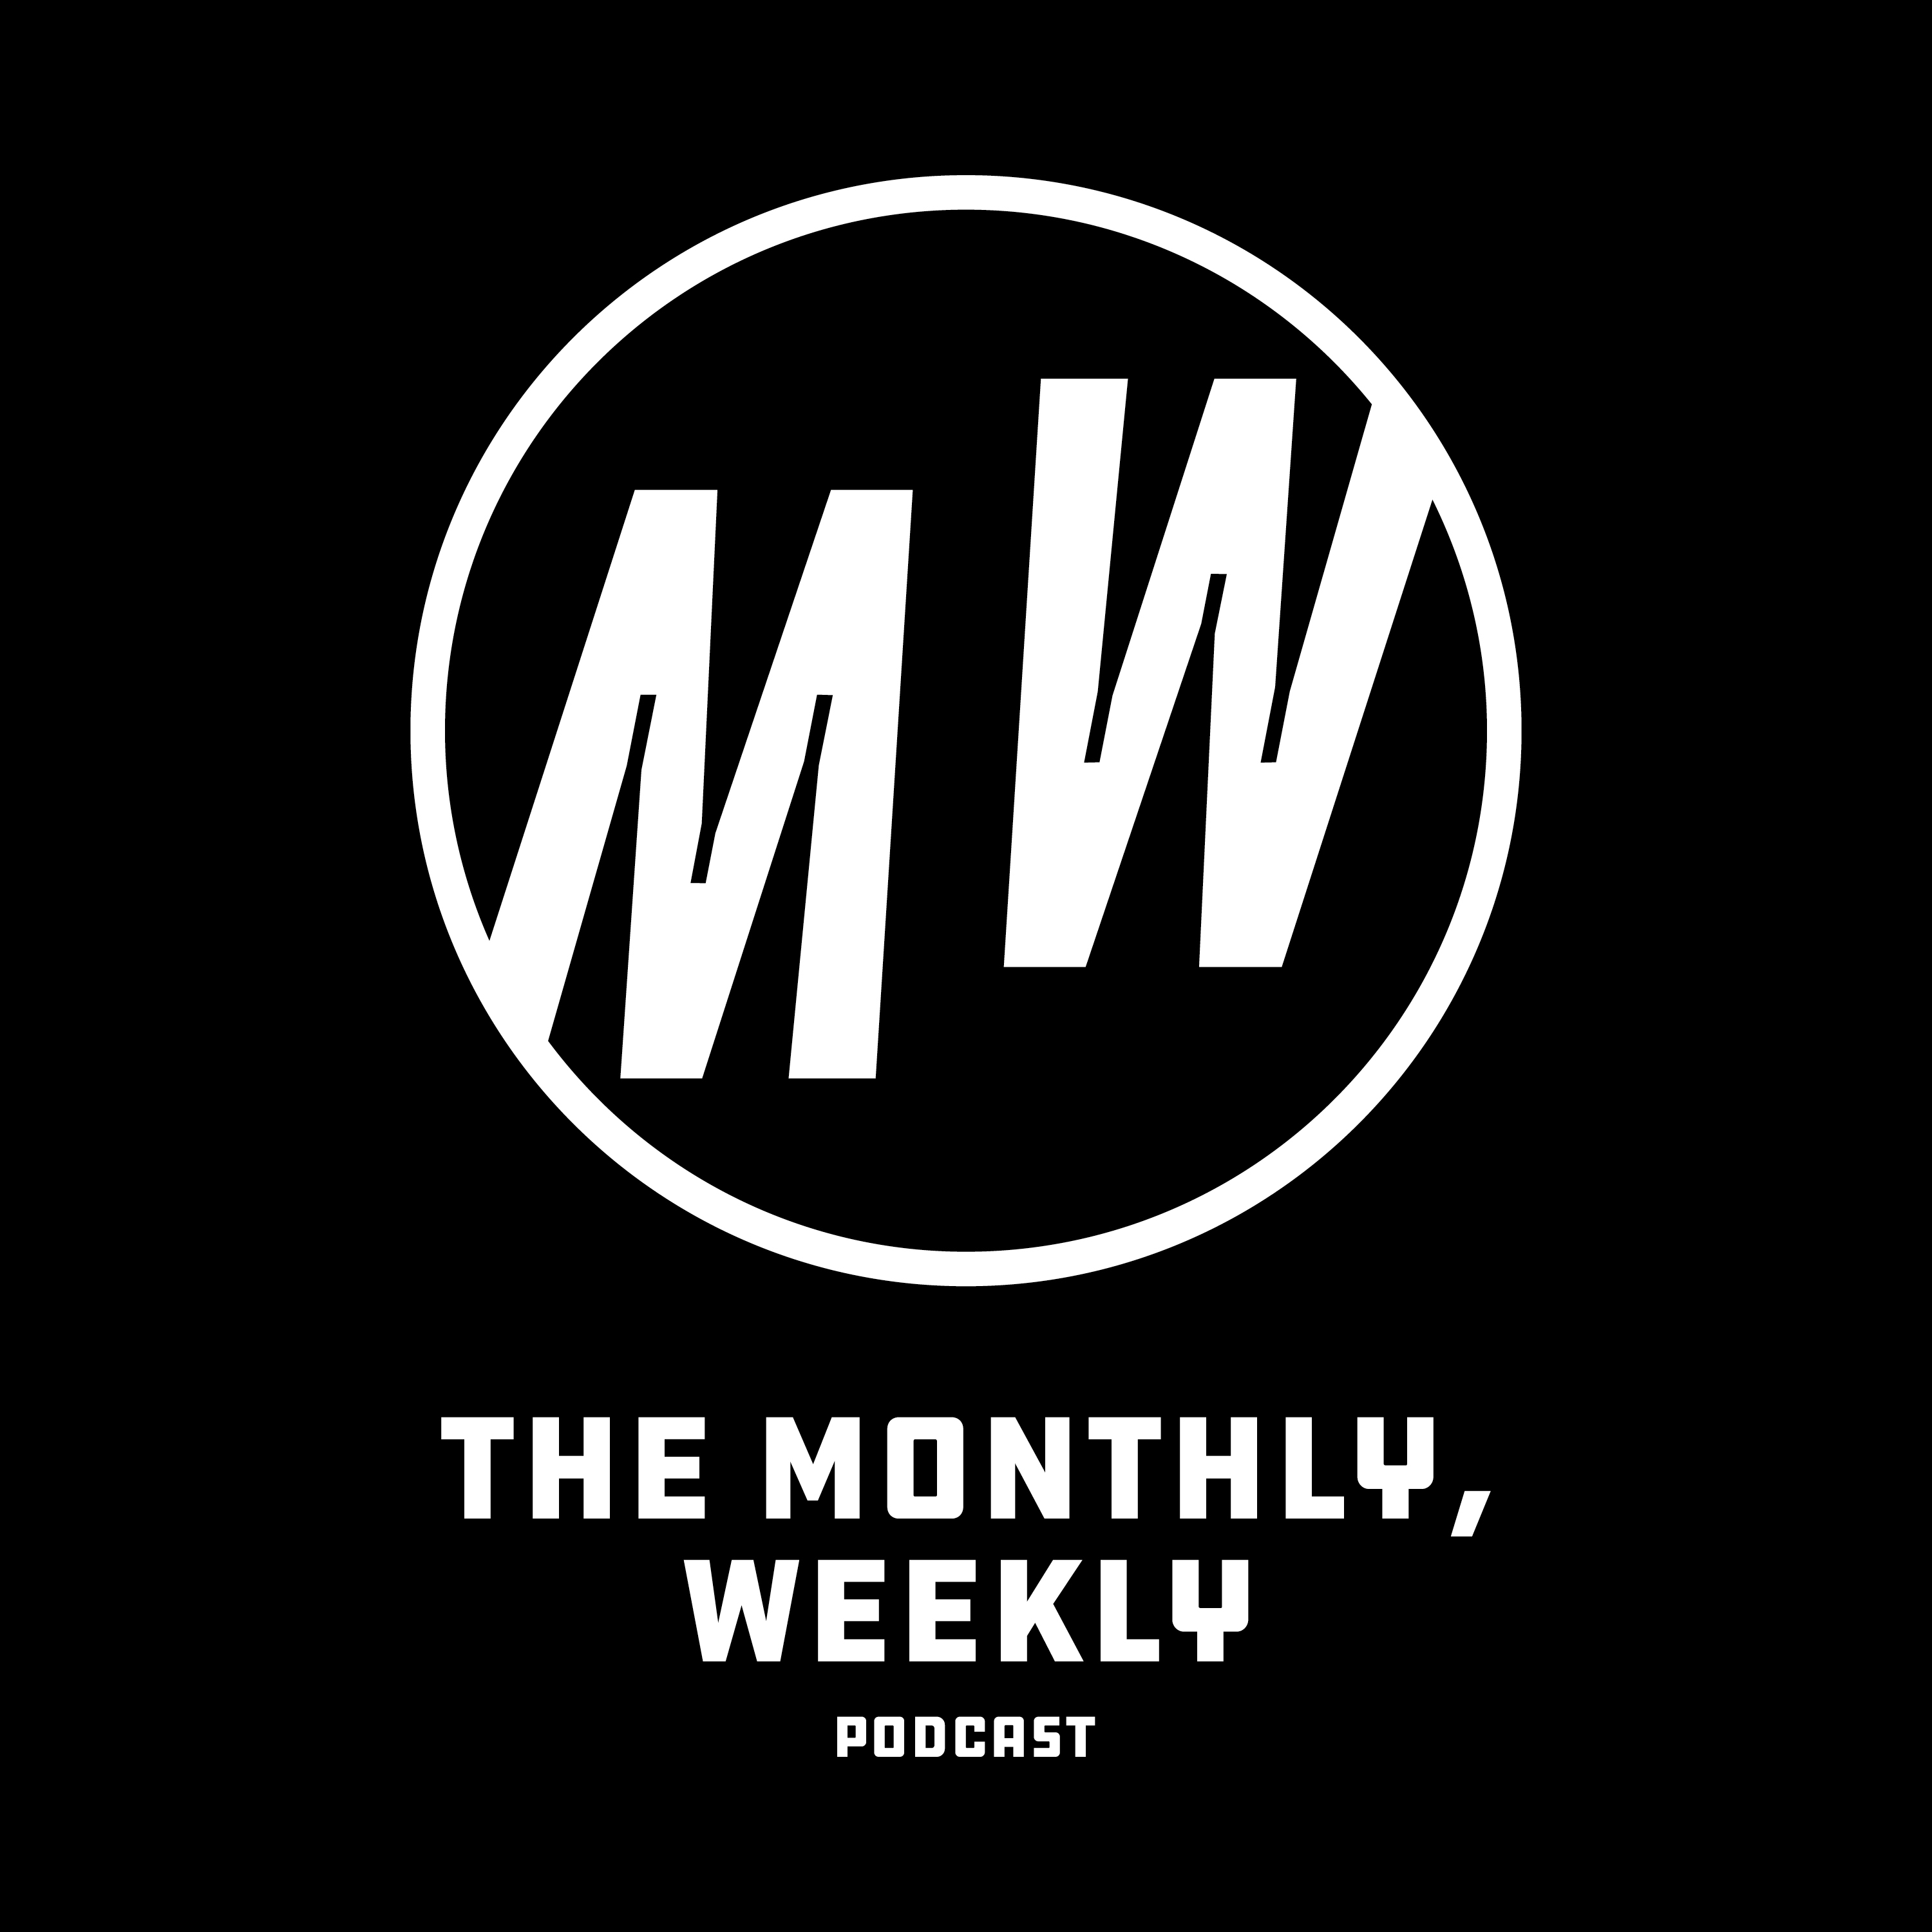 The Monthly, Weekly show art